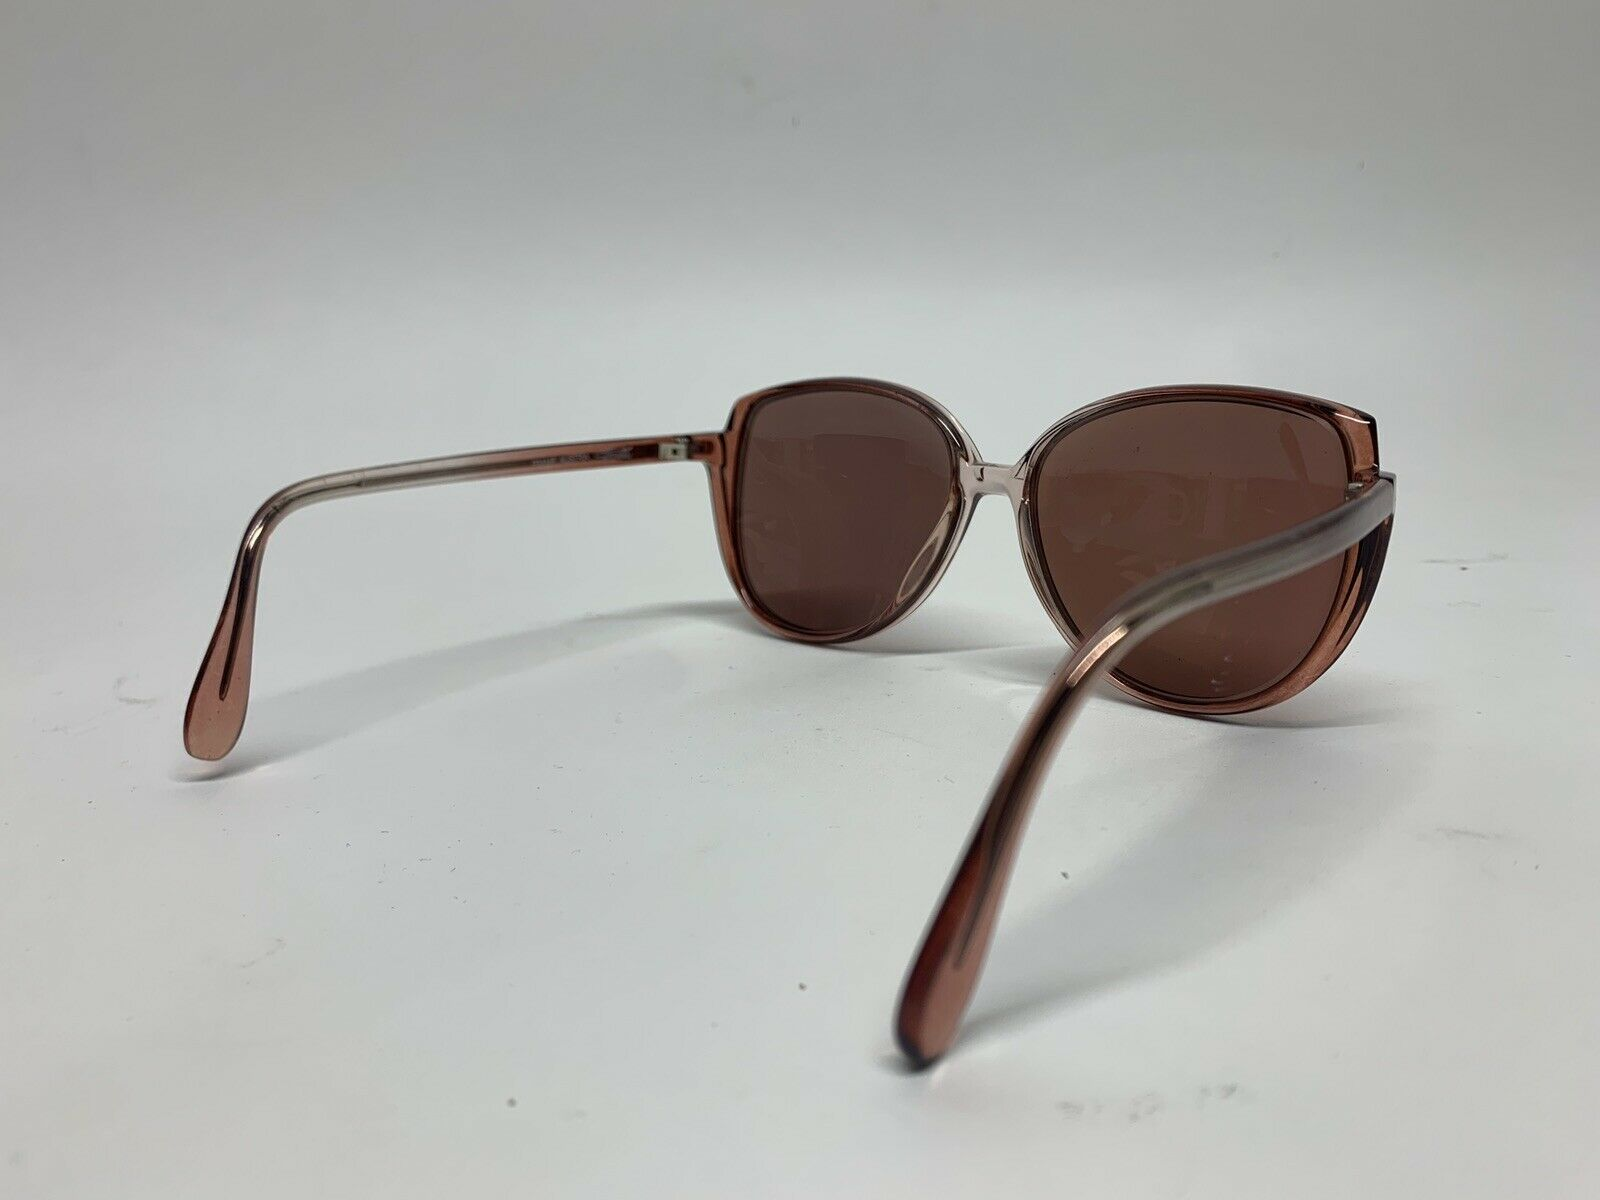 Vintage Austrian Sunglasses By Silhouette From Th… - image 4